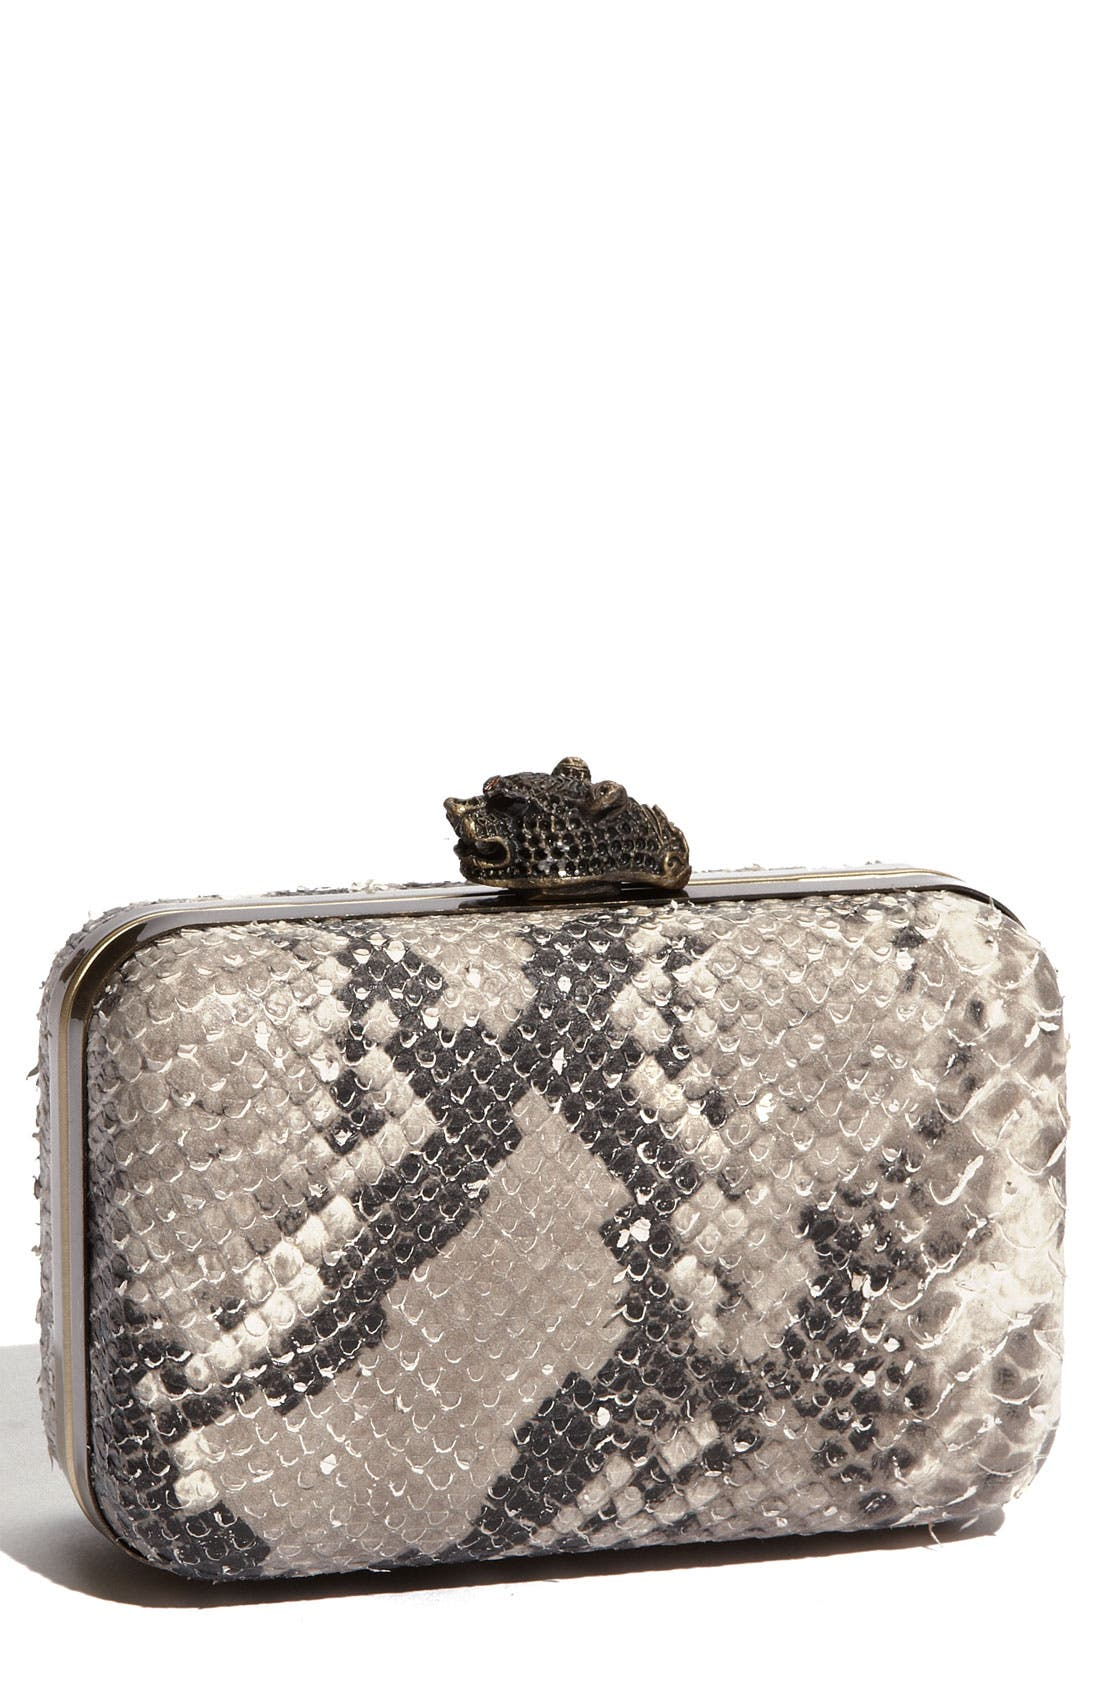 Main Image - House of Harlow 1960 'Marley' Clutch